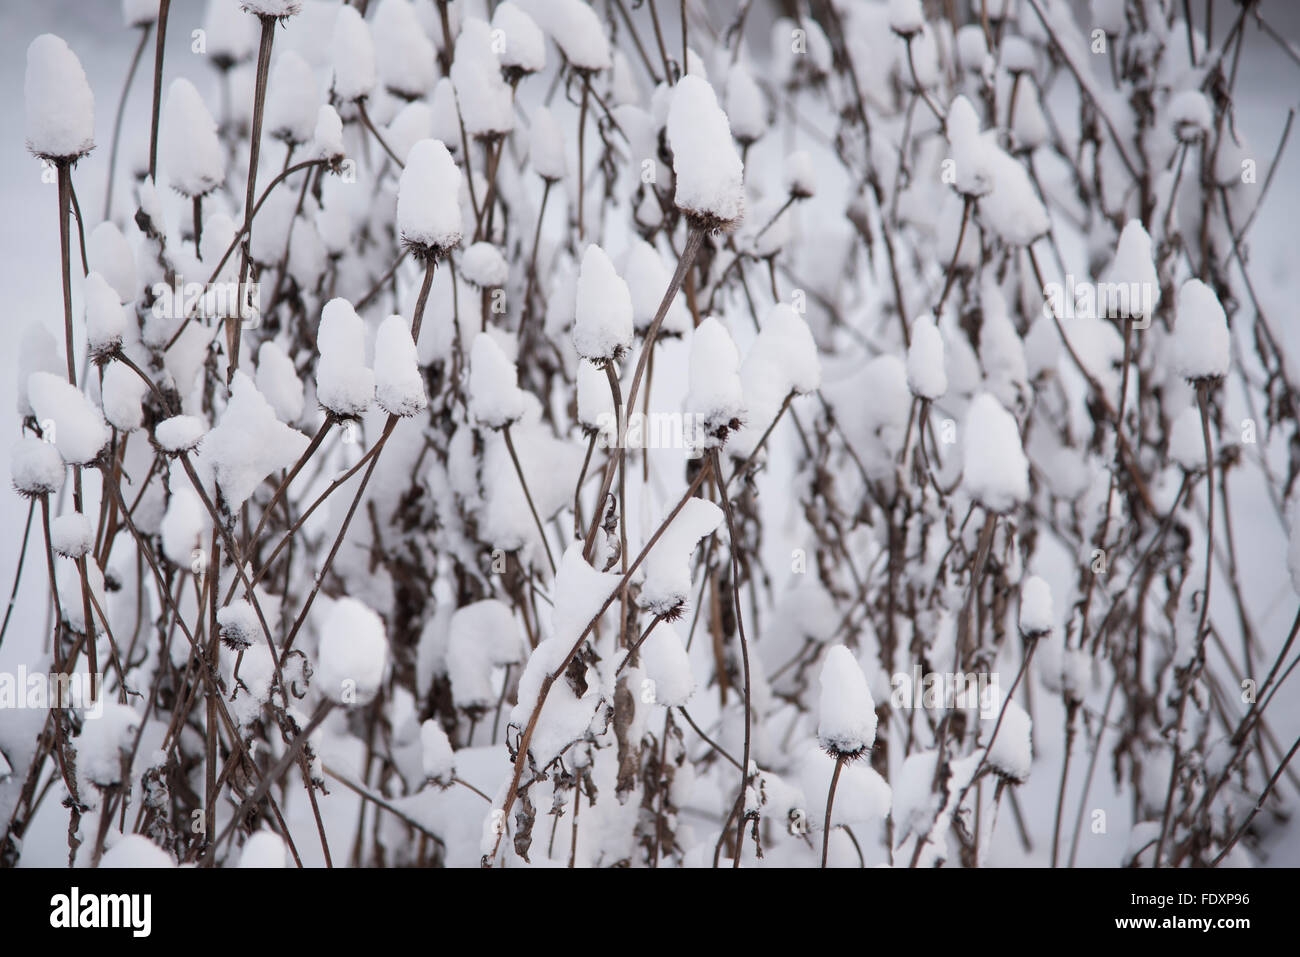 Group of snow-covered Purple Coneflower (Echinacea purpurea) stems and seed heads. - Stock Image